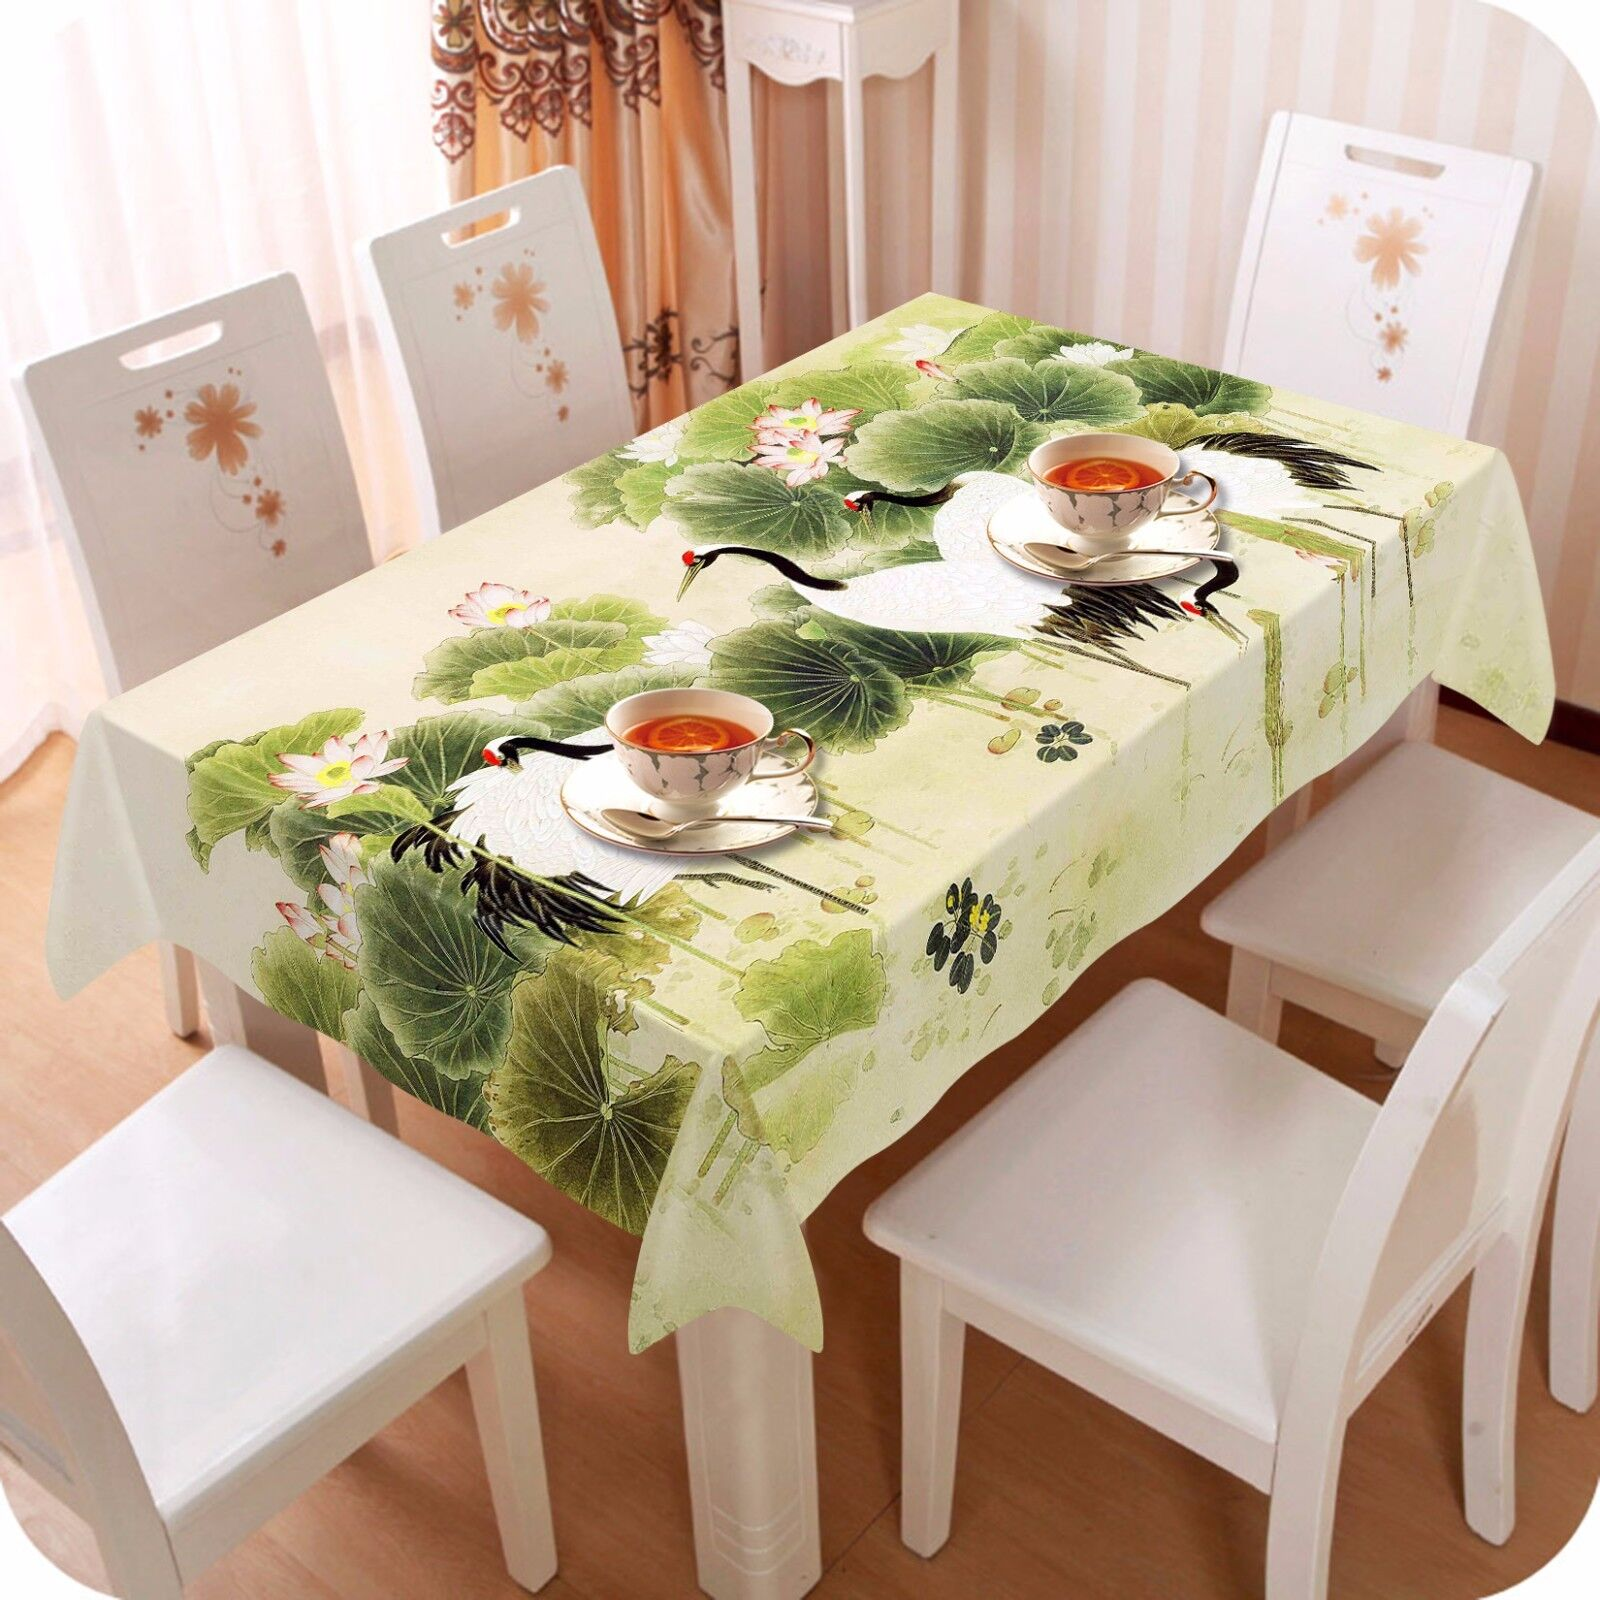 3D Leaves 46 Tablecloth Table Cover Cloth Birthday Party AJ WALLPAPER UK Lemon